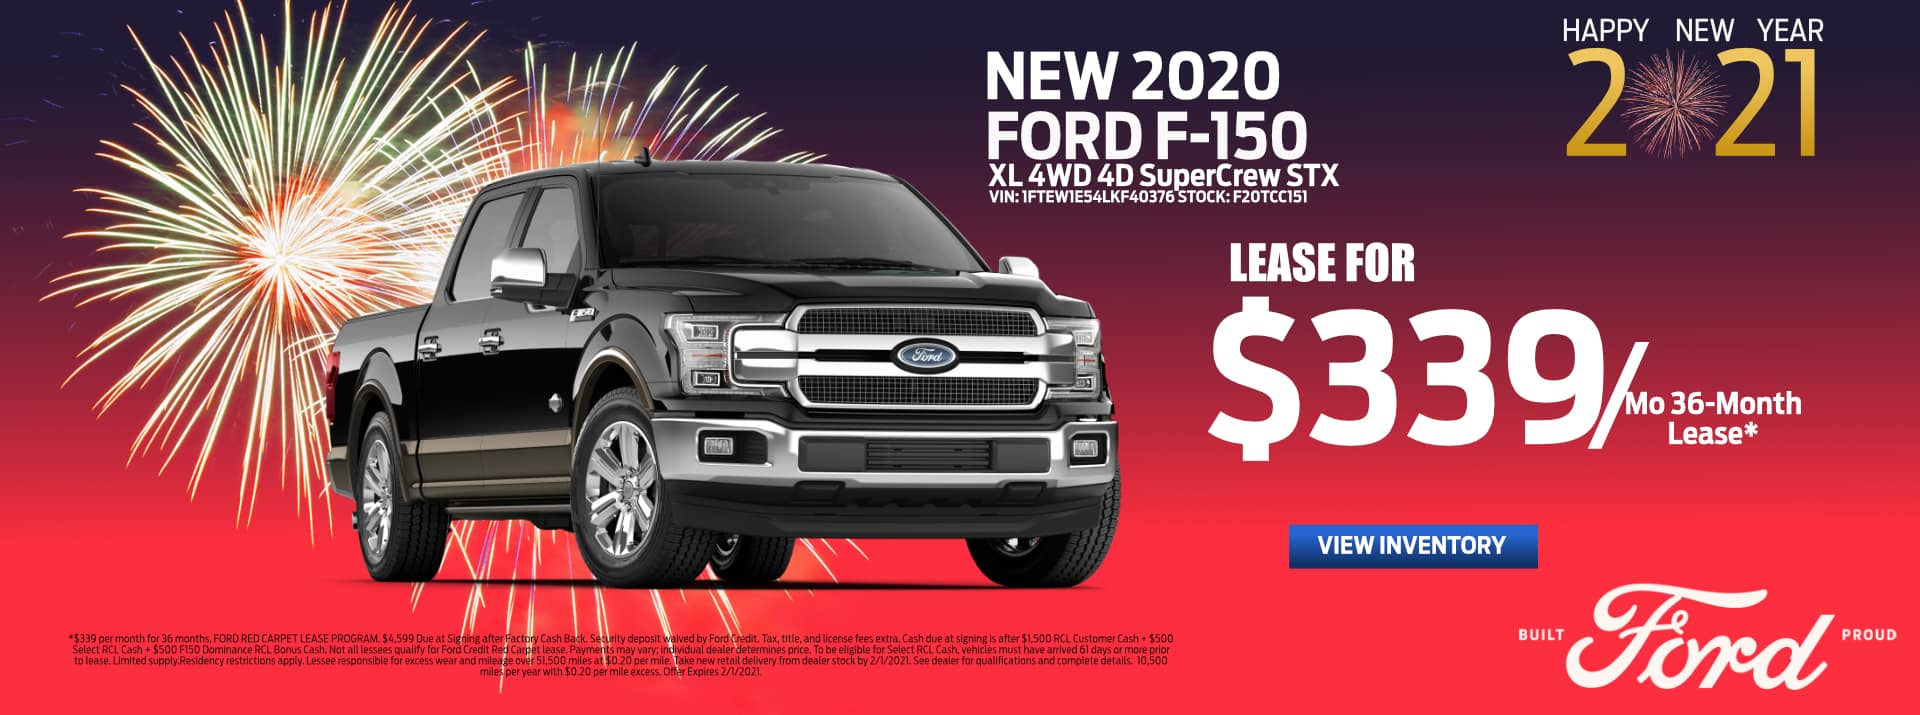 January-2021 Ford F-150 Lease_Palm_Springs_Ford